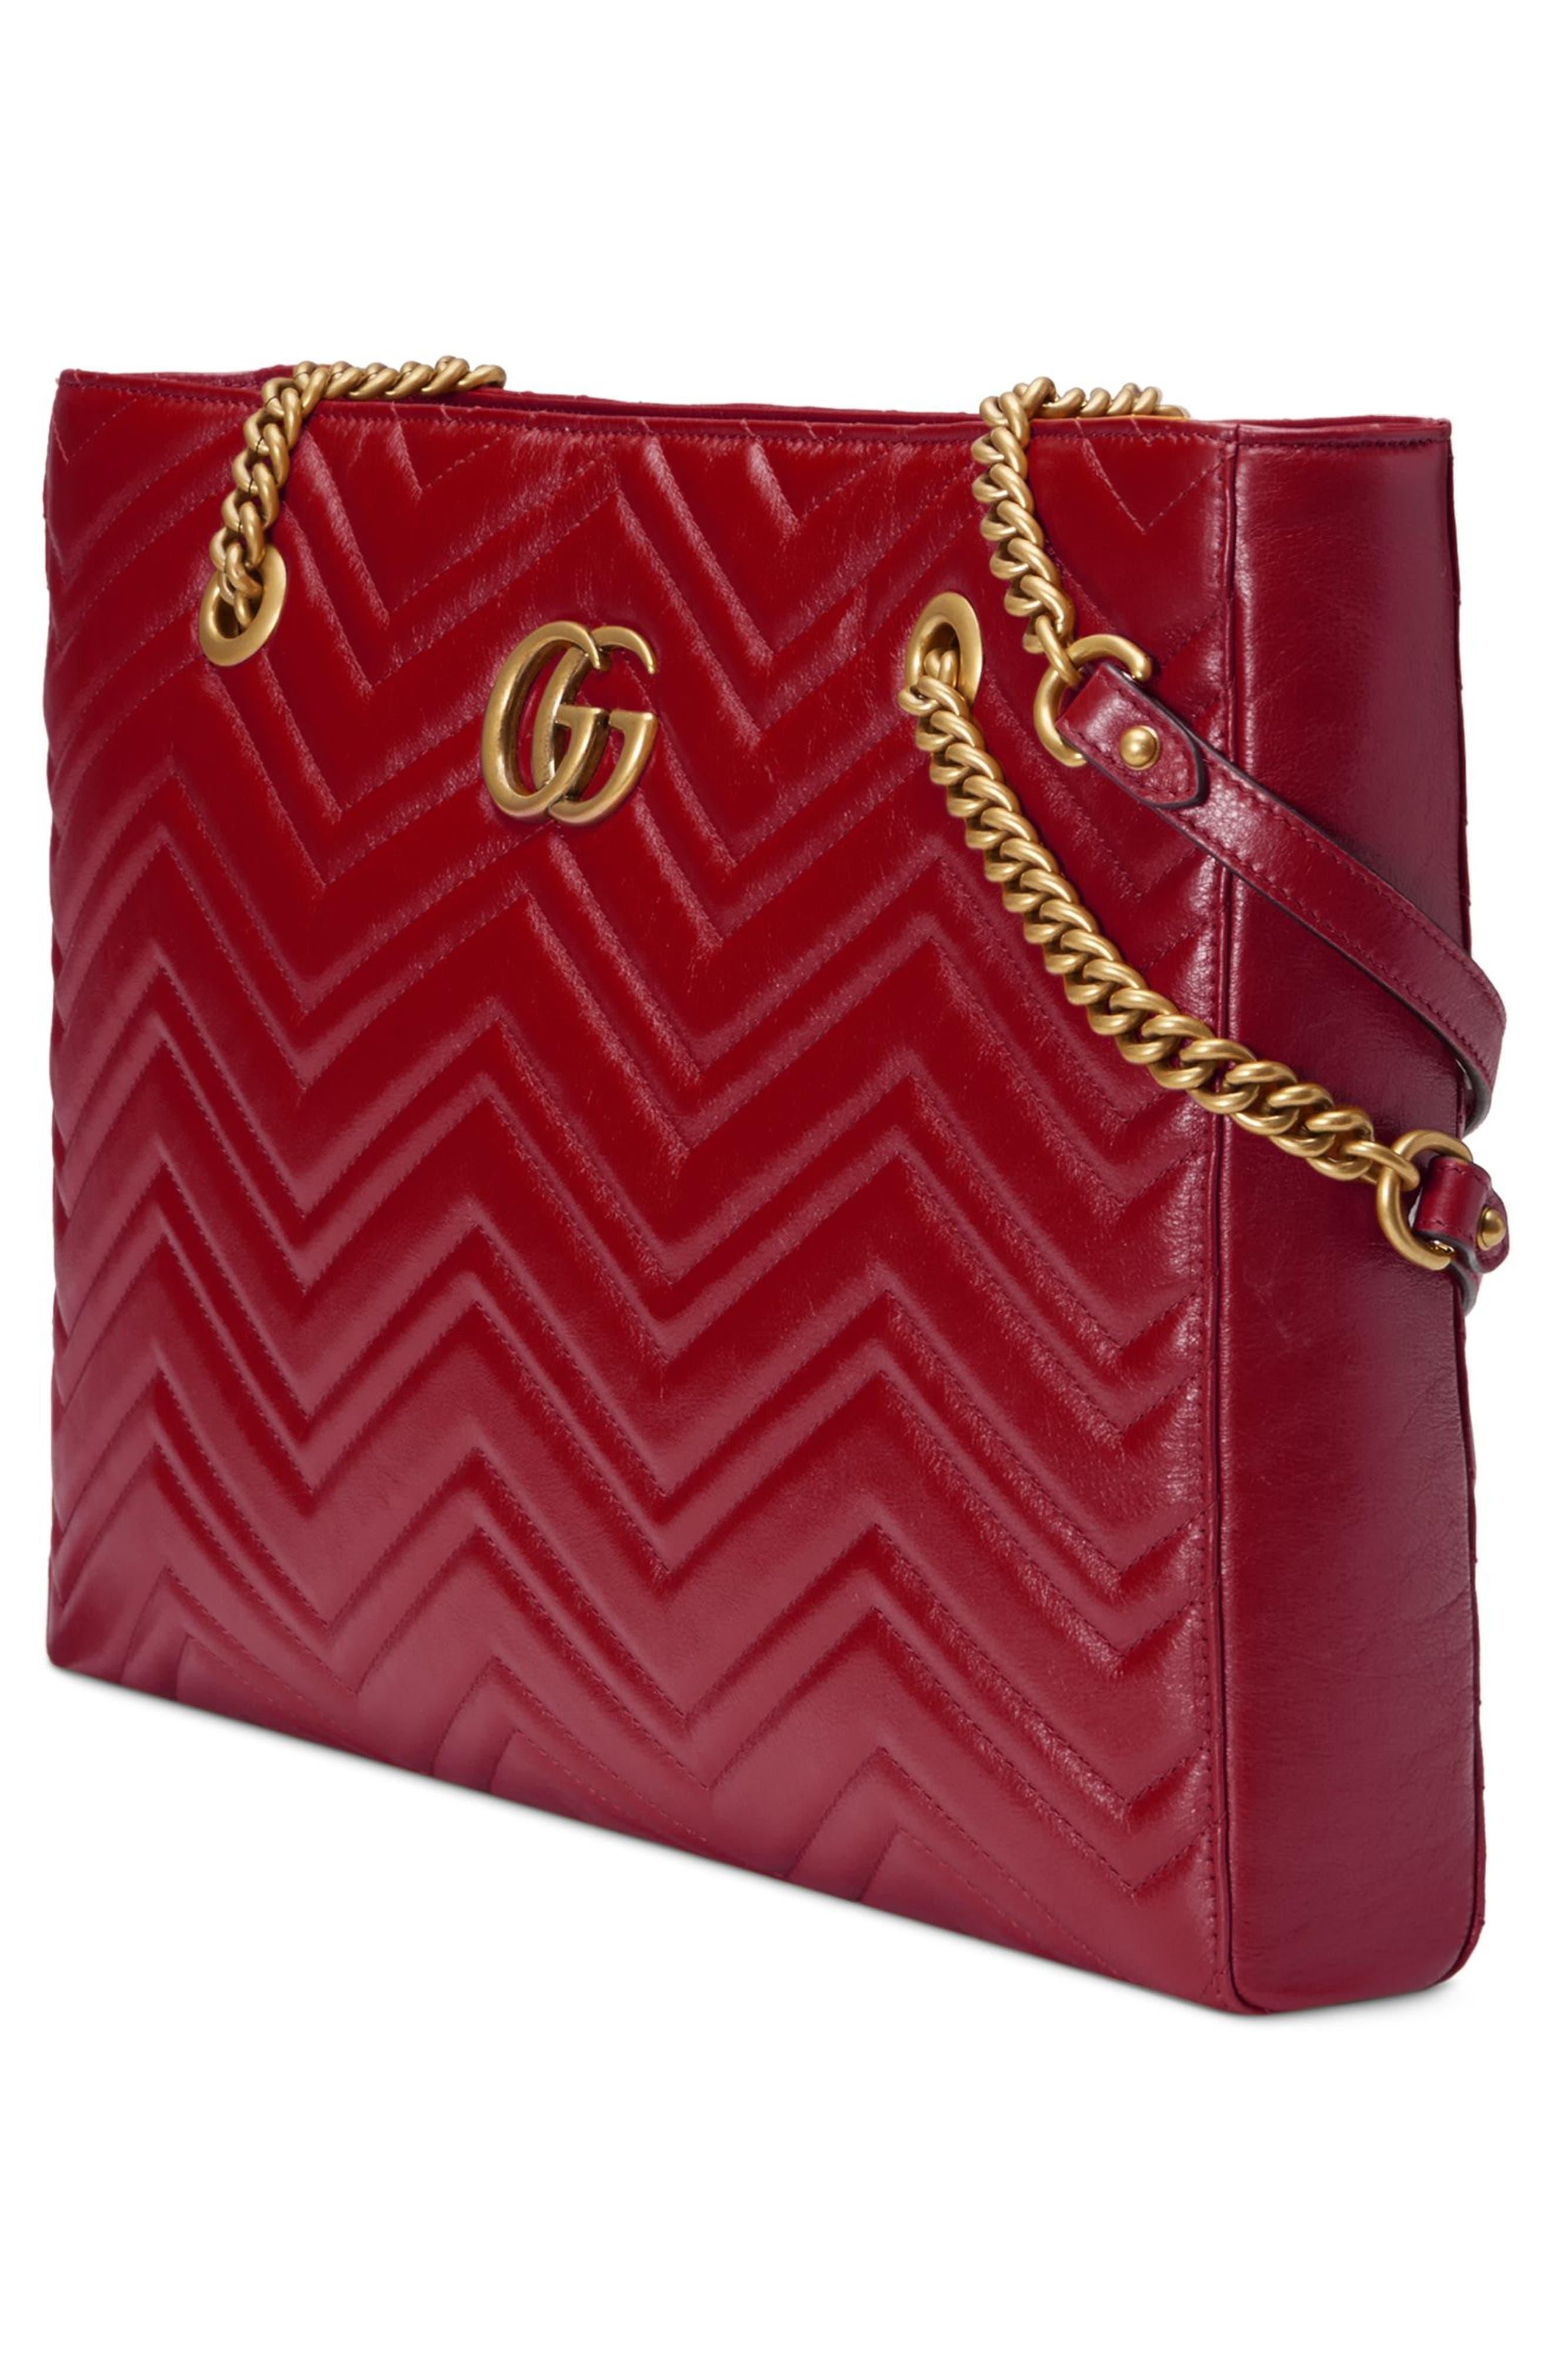 GG Marmont 2.0 Matelassé Medium Leather East/West Tote Bag,                             Alternate thumbnail 5, color,                             CERISE/ CERISE